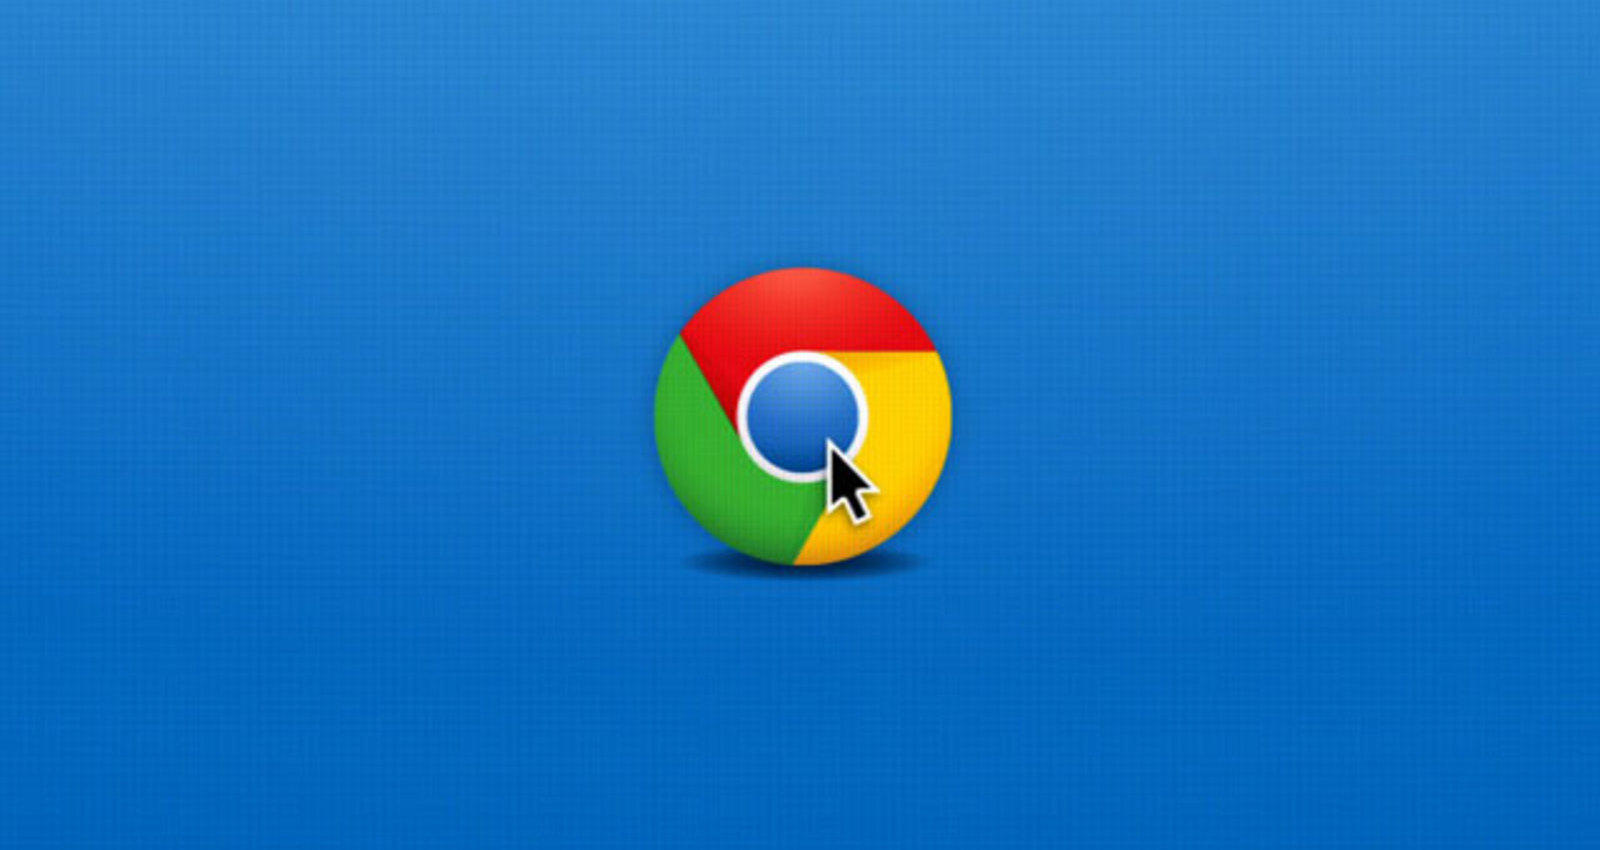 Google Chrome: The Web Is What You Make of It